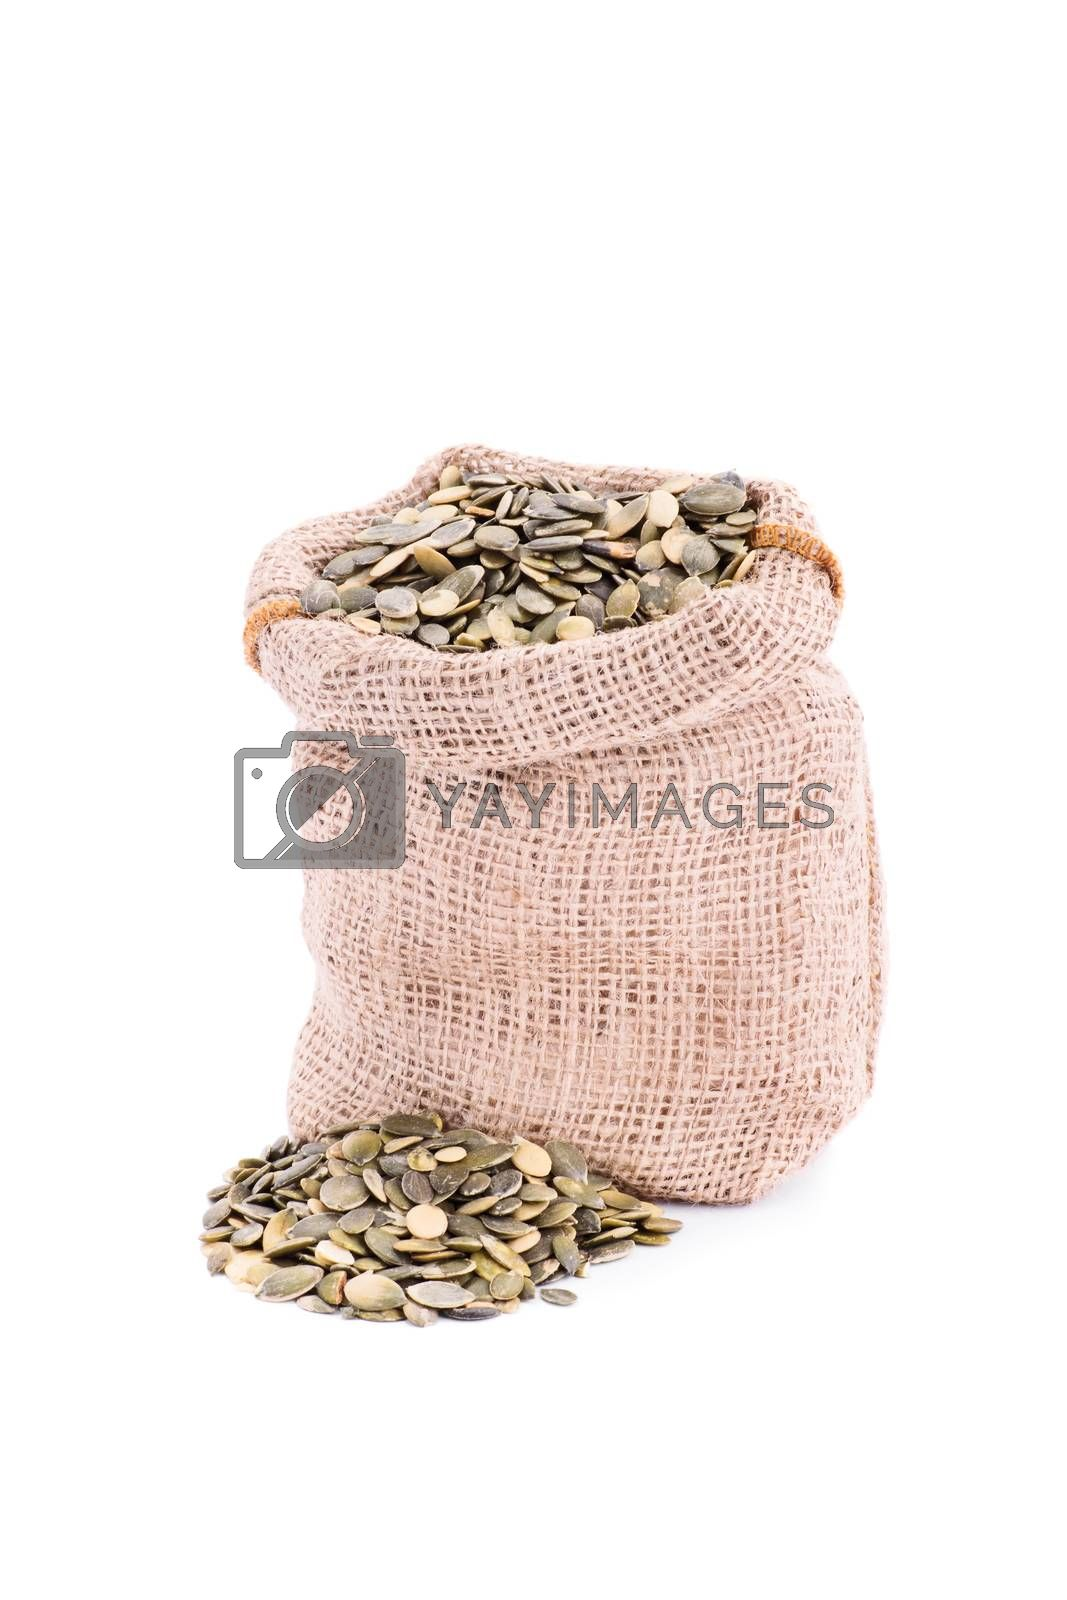 Small burlap sack of fresh pumpkin seeds, isolated on white background.